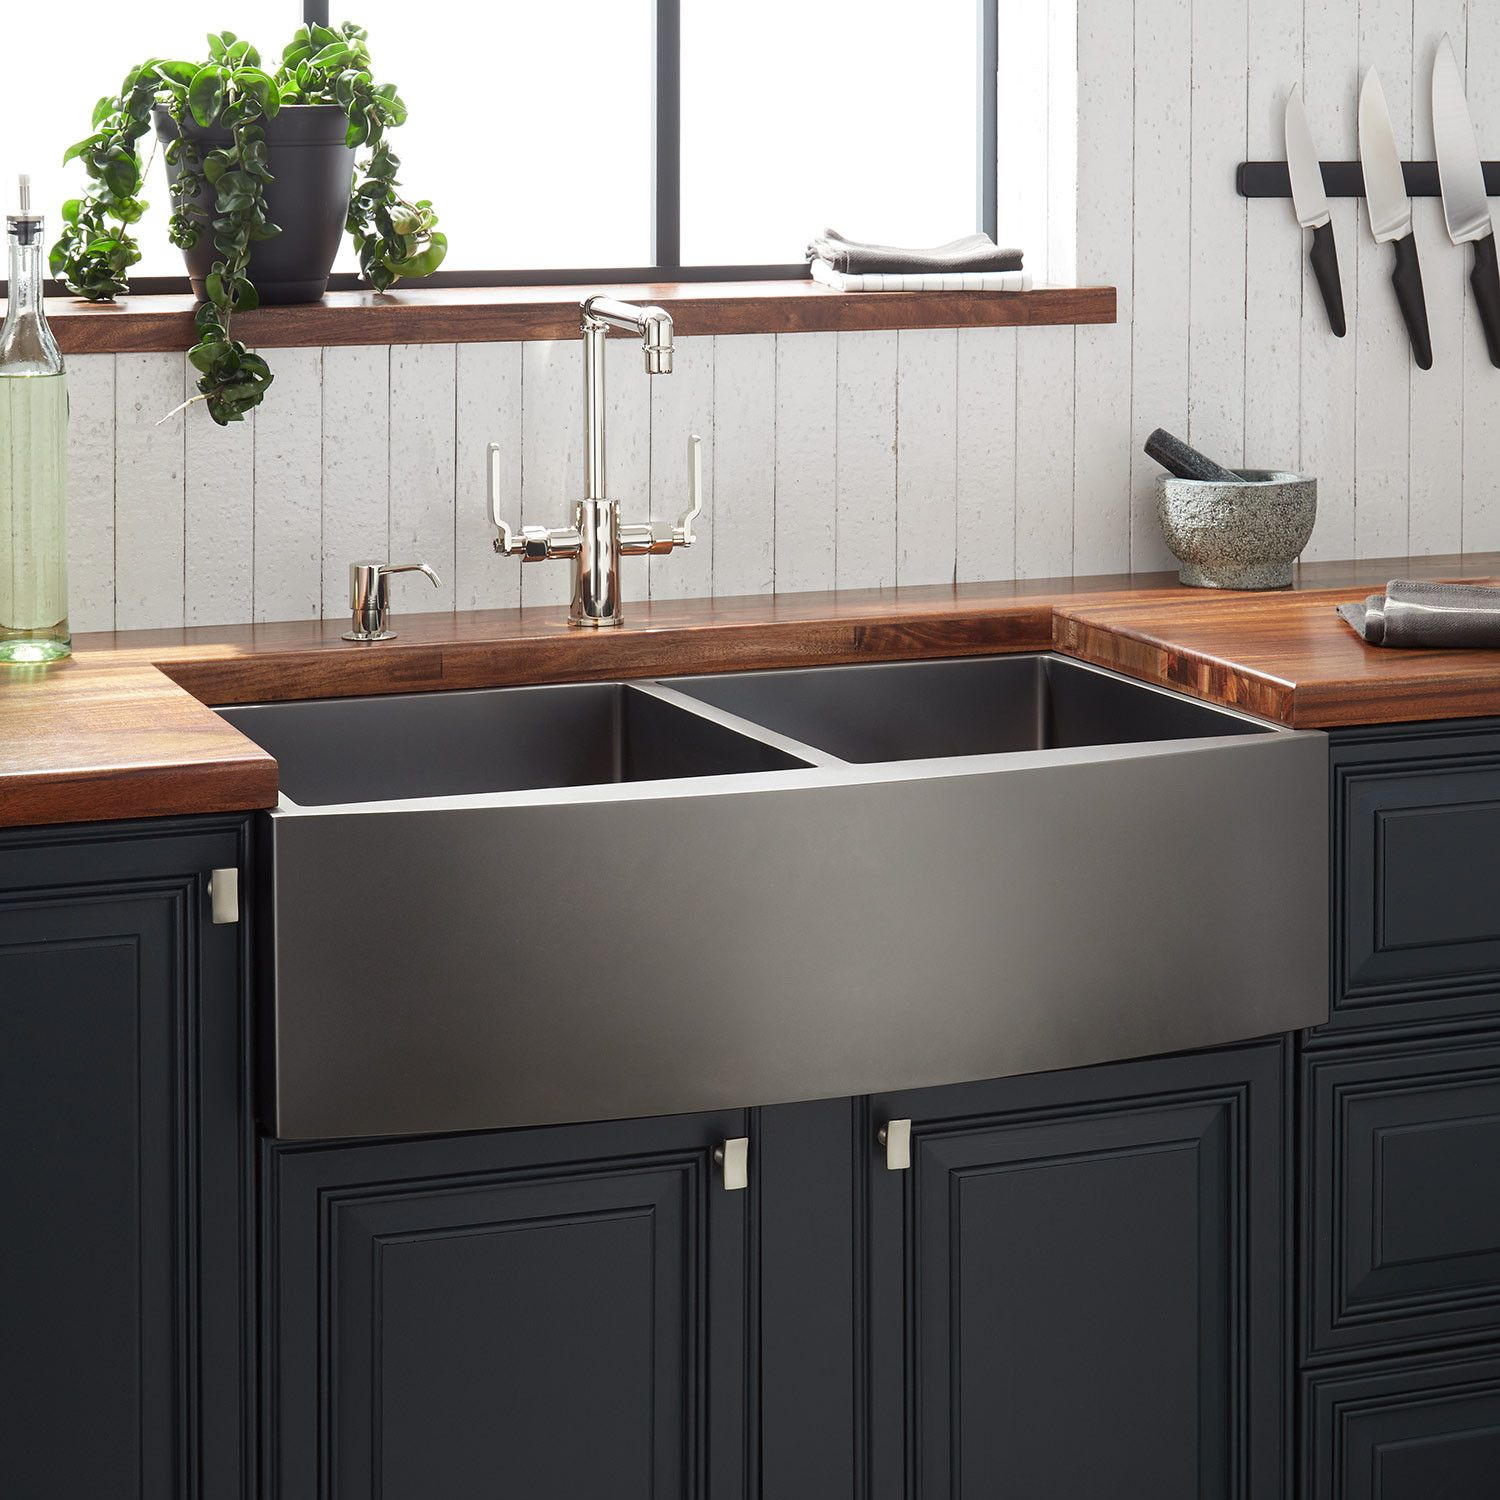 33 Atlas Double Bowl Stainless Steel Farmhouse Sink Curved